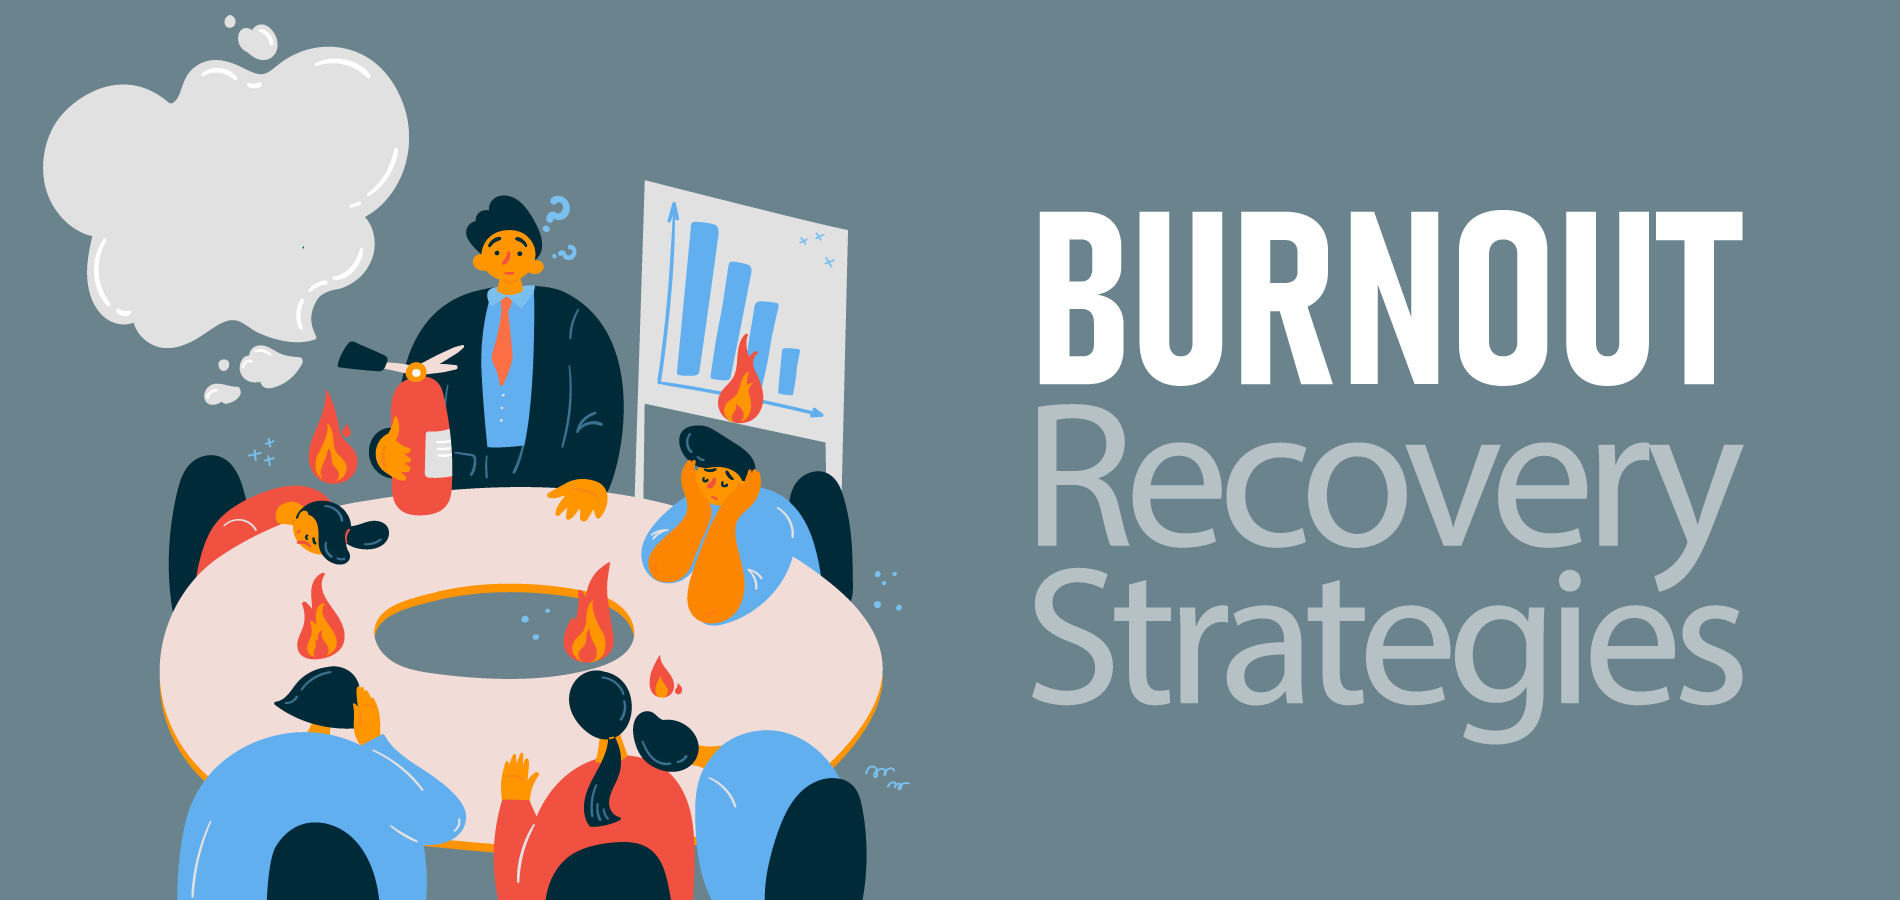 Burnout Recovery Strategies